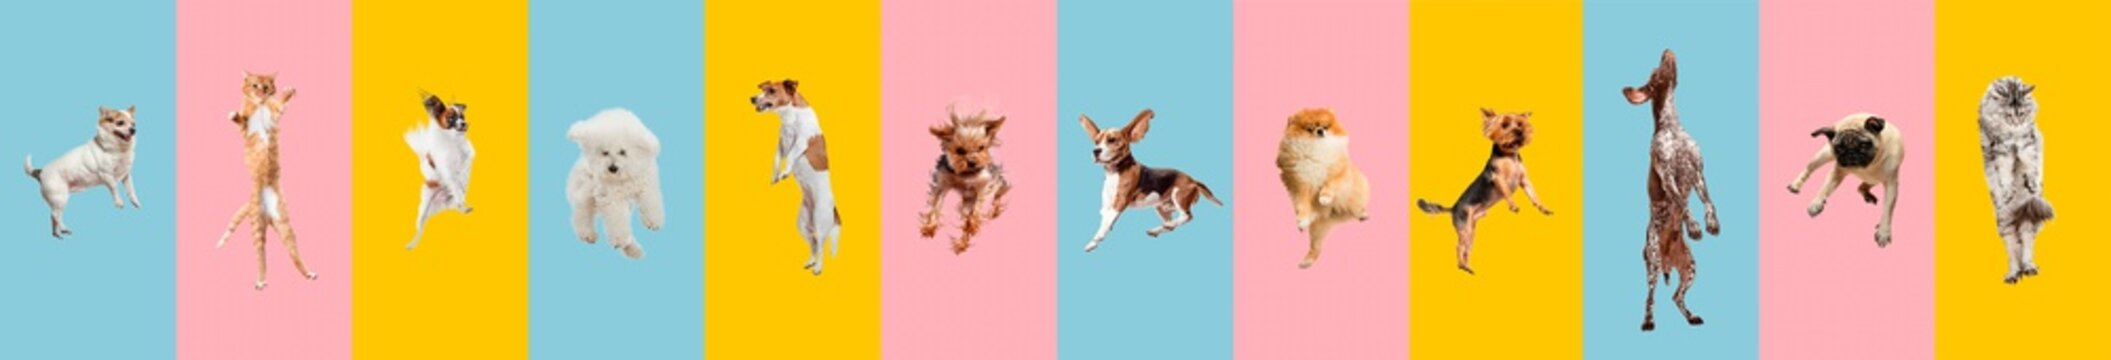 Cute dogs and cat jumping, playing, flying, looking happy isolated on colorful or gradient background. Studio. Creative collage of different breeds of dogs and one cat. Flyer for your ad, copyspace.